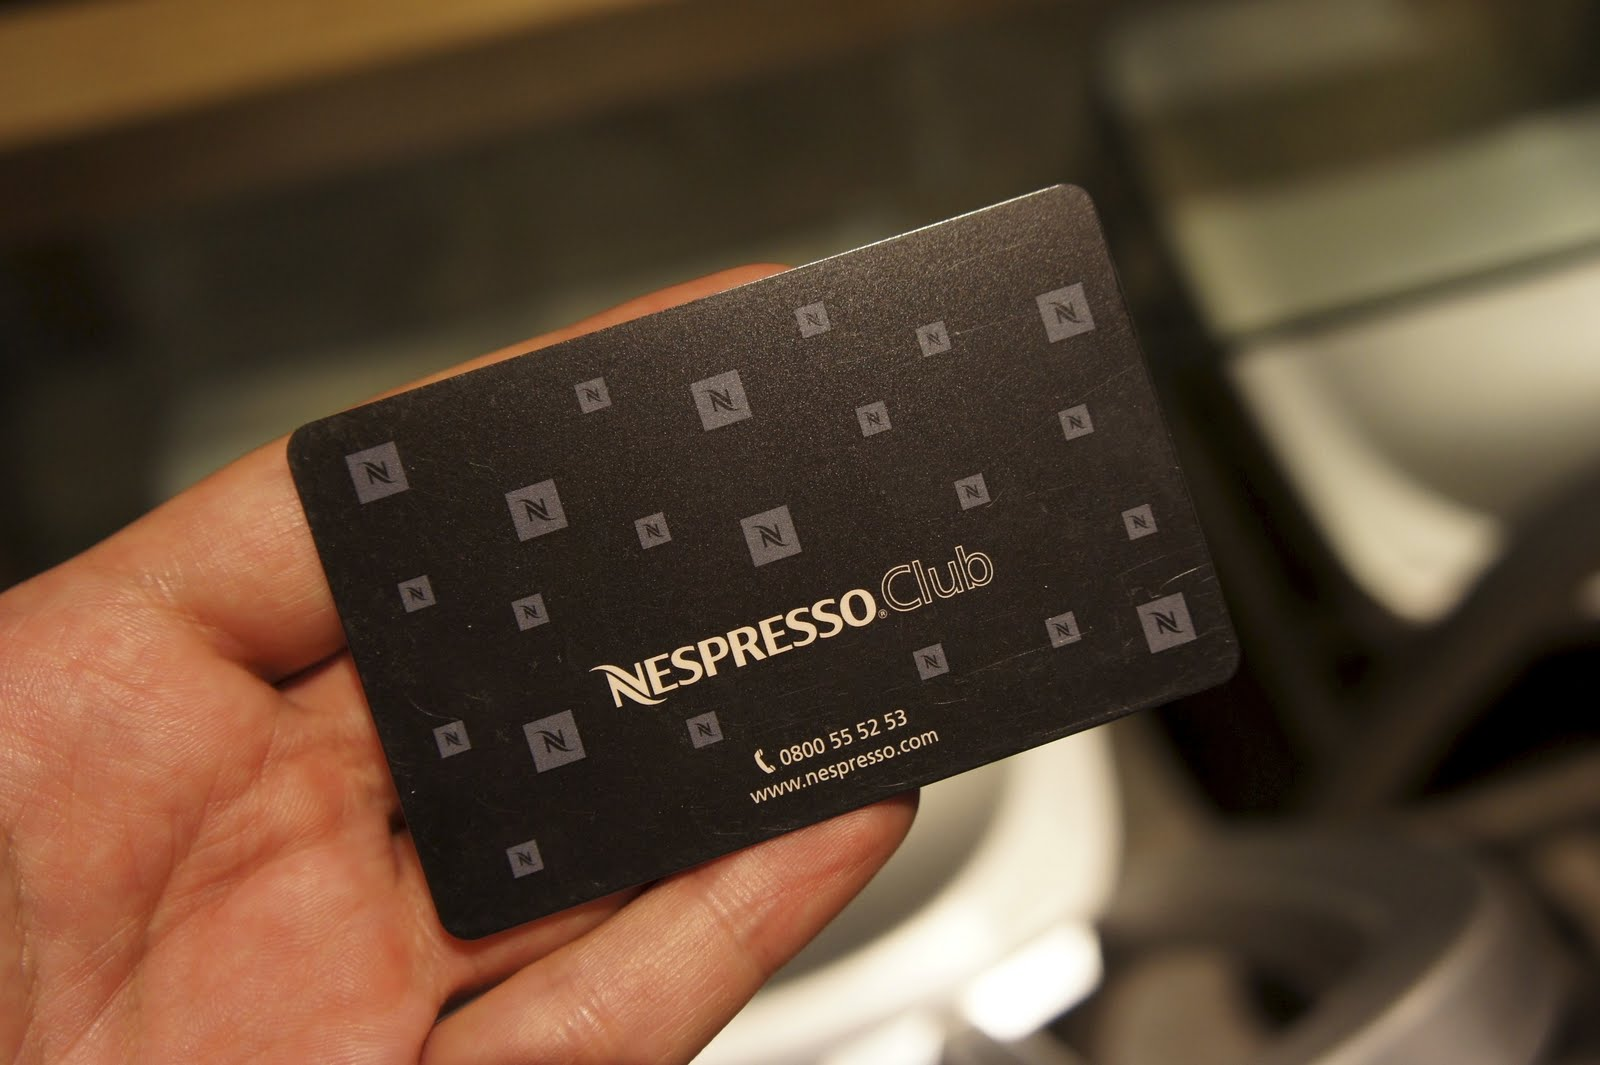 i  first person singular Nespresso Star Boutique  -> Nespresso Club